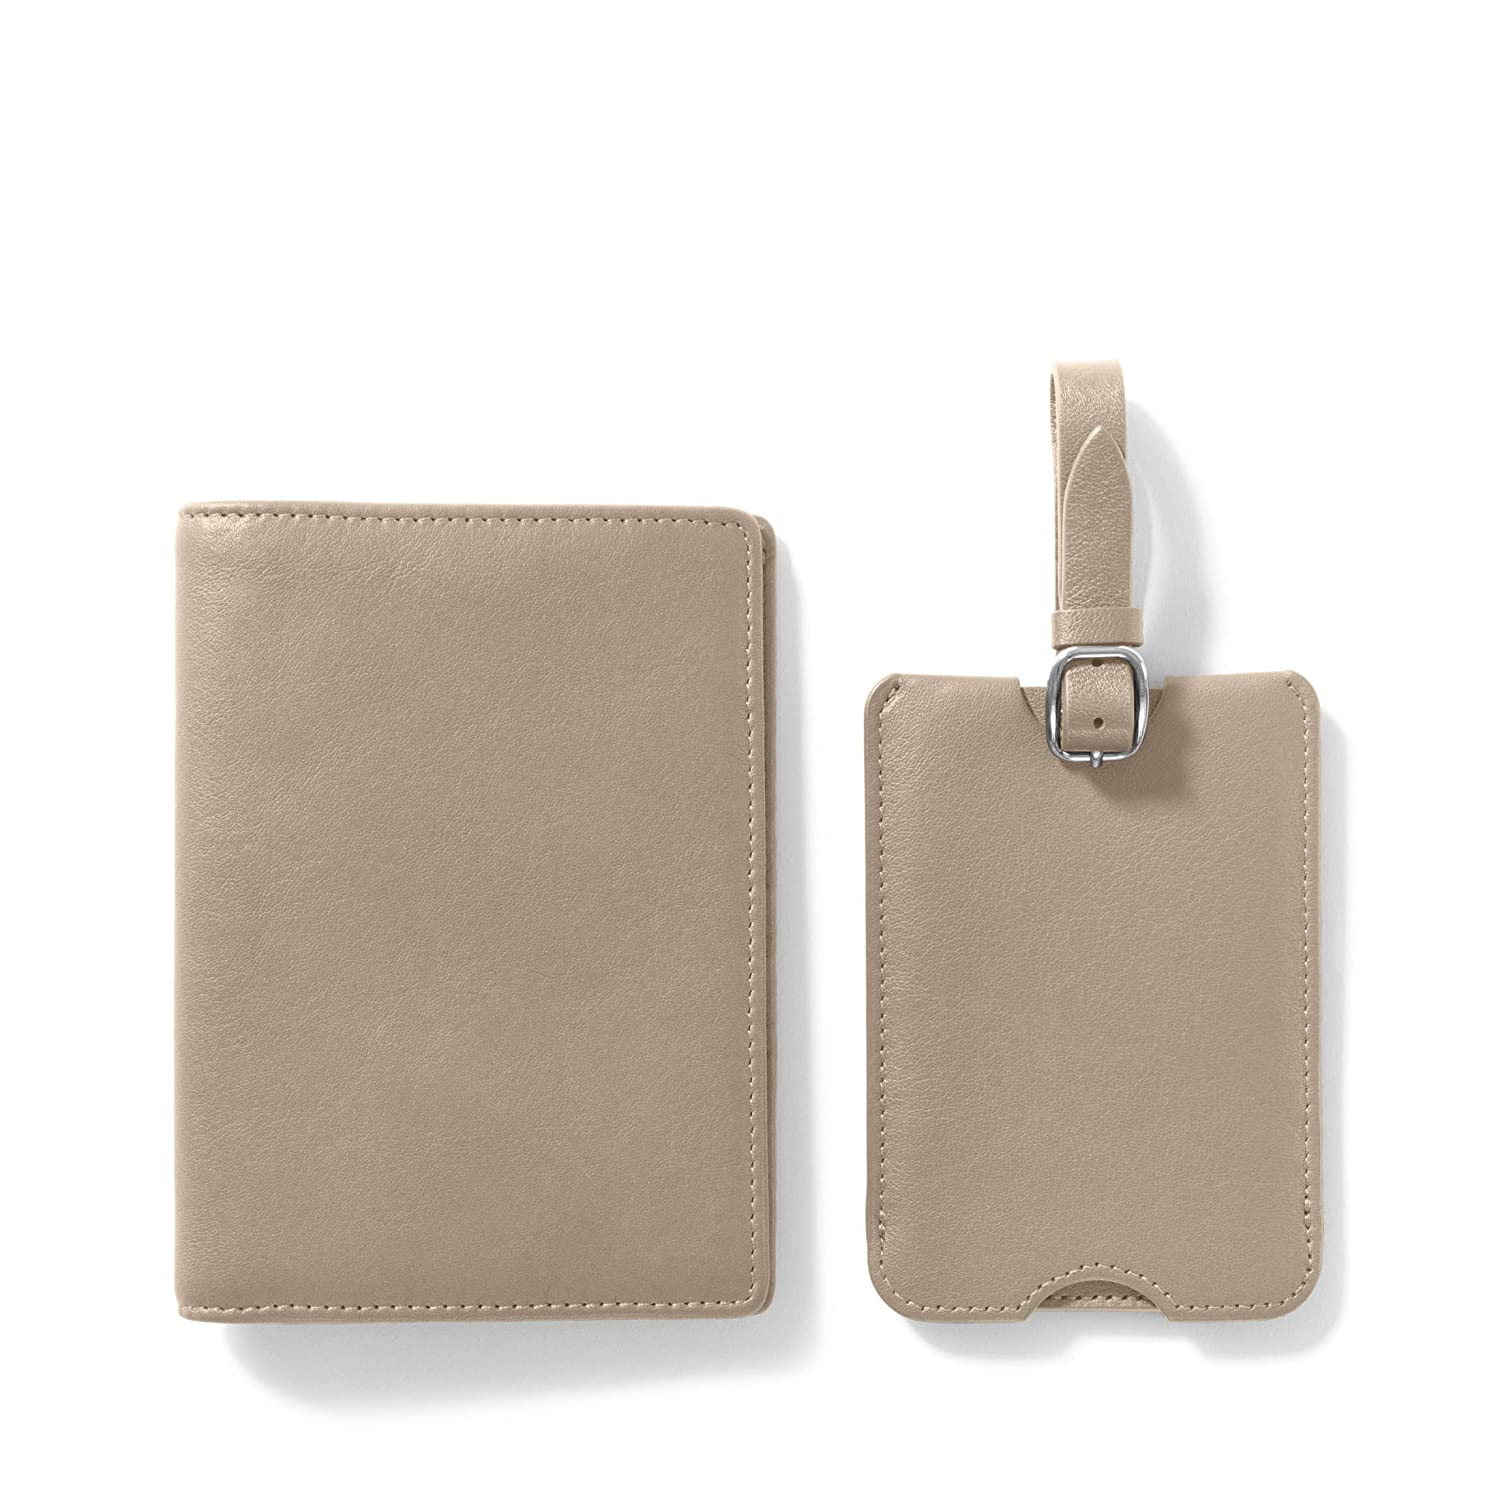 Deluxe Passport Cover Luggage Tag Set